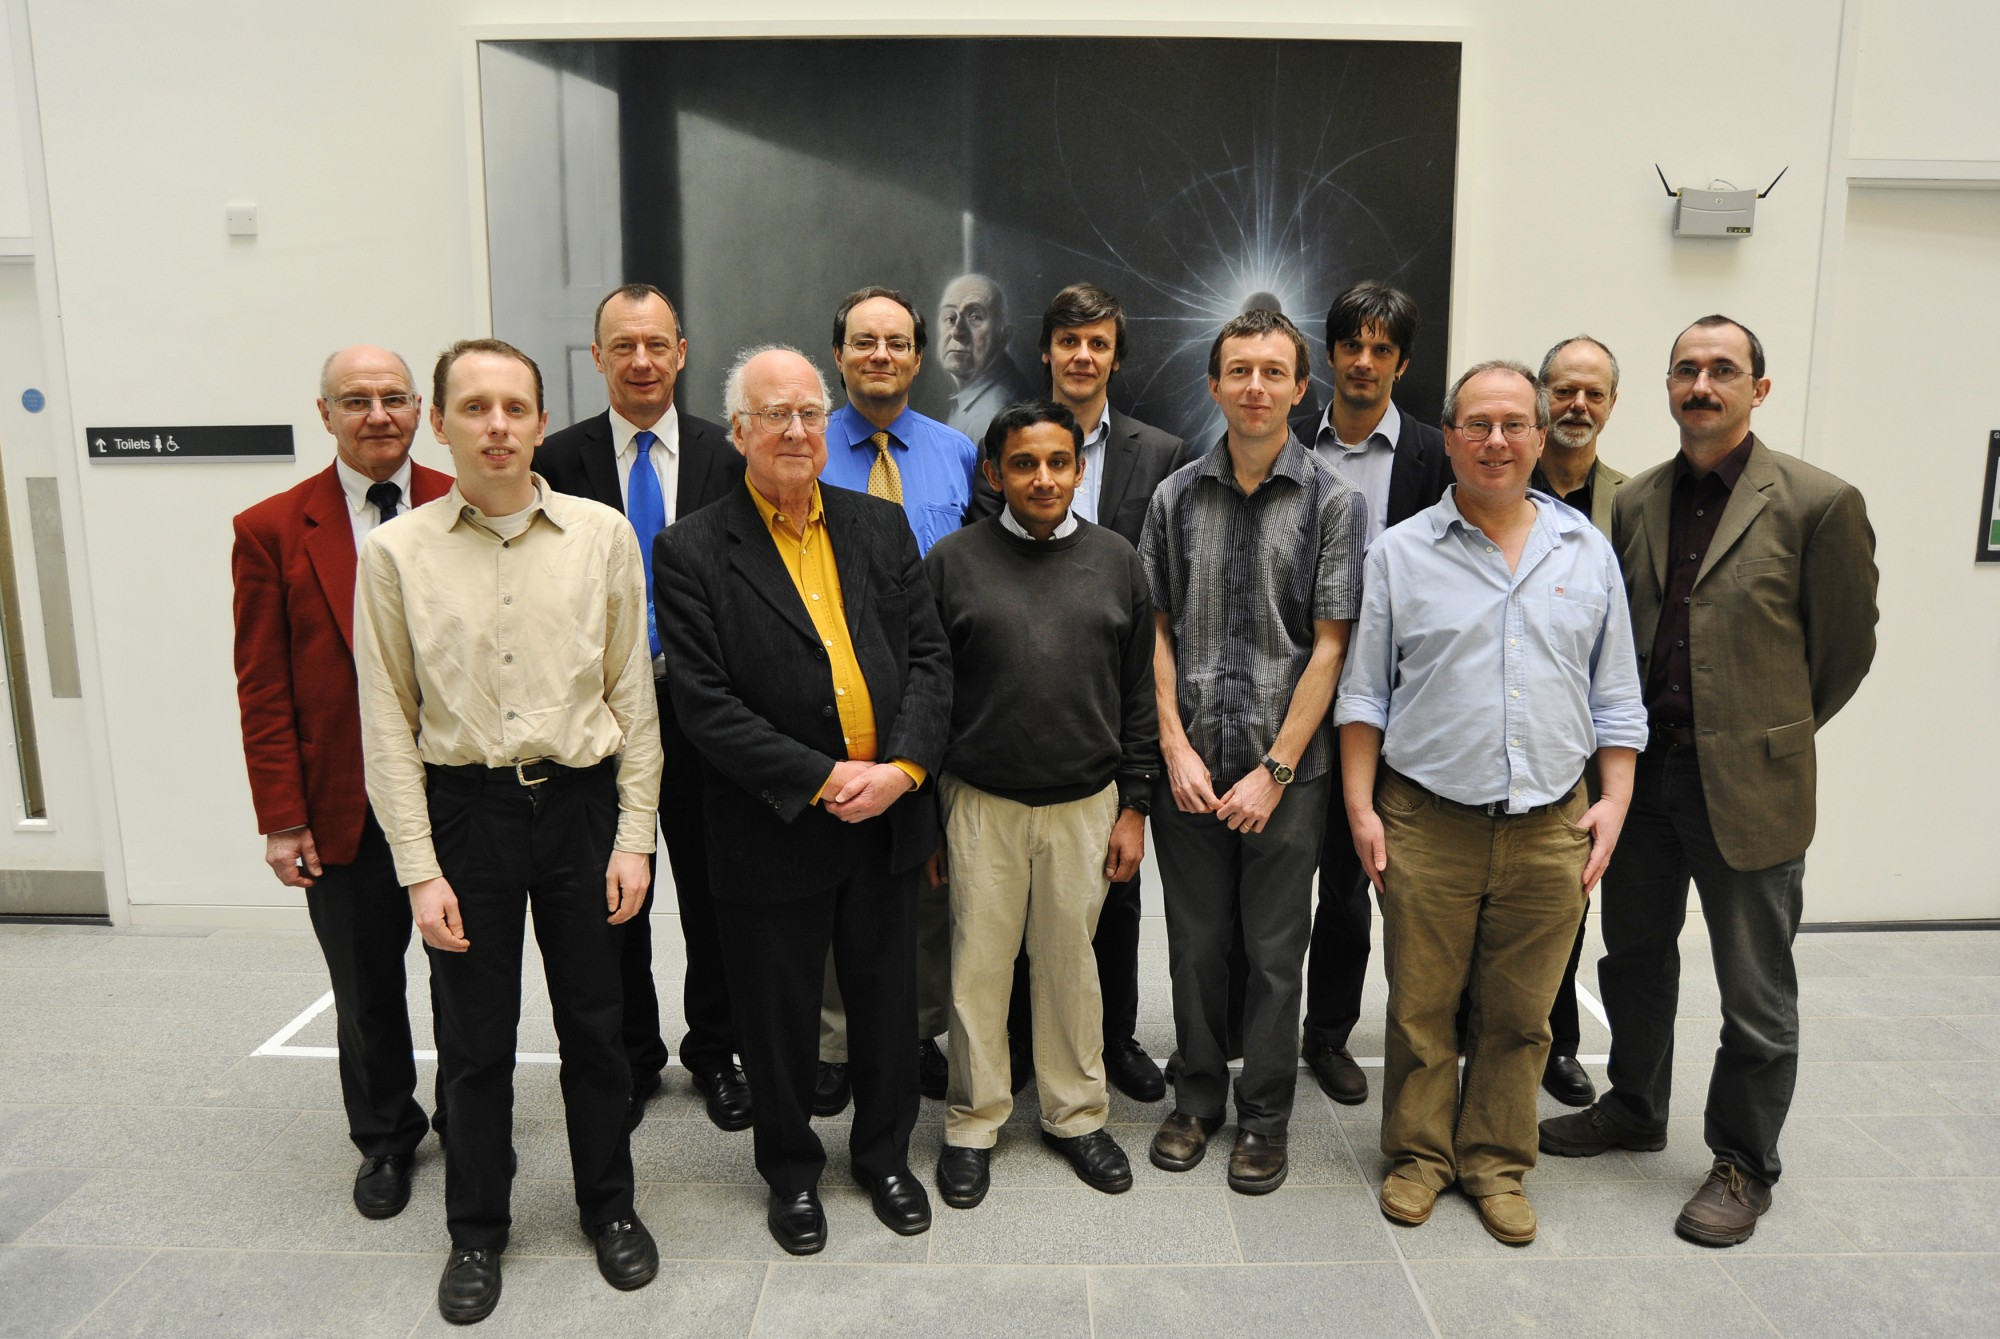 Peter Higgs with members of the Particle Physics Theory group of the School of Physics and Astronomy.